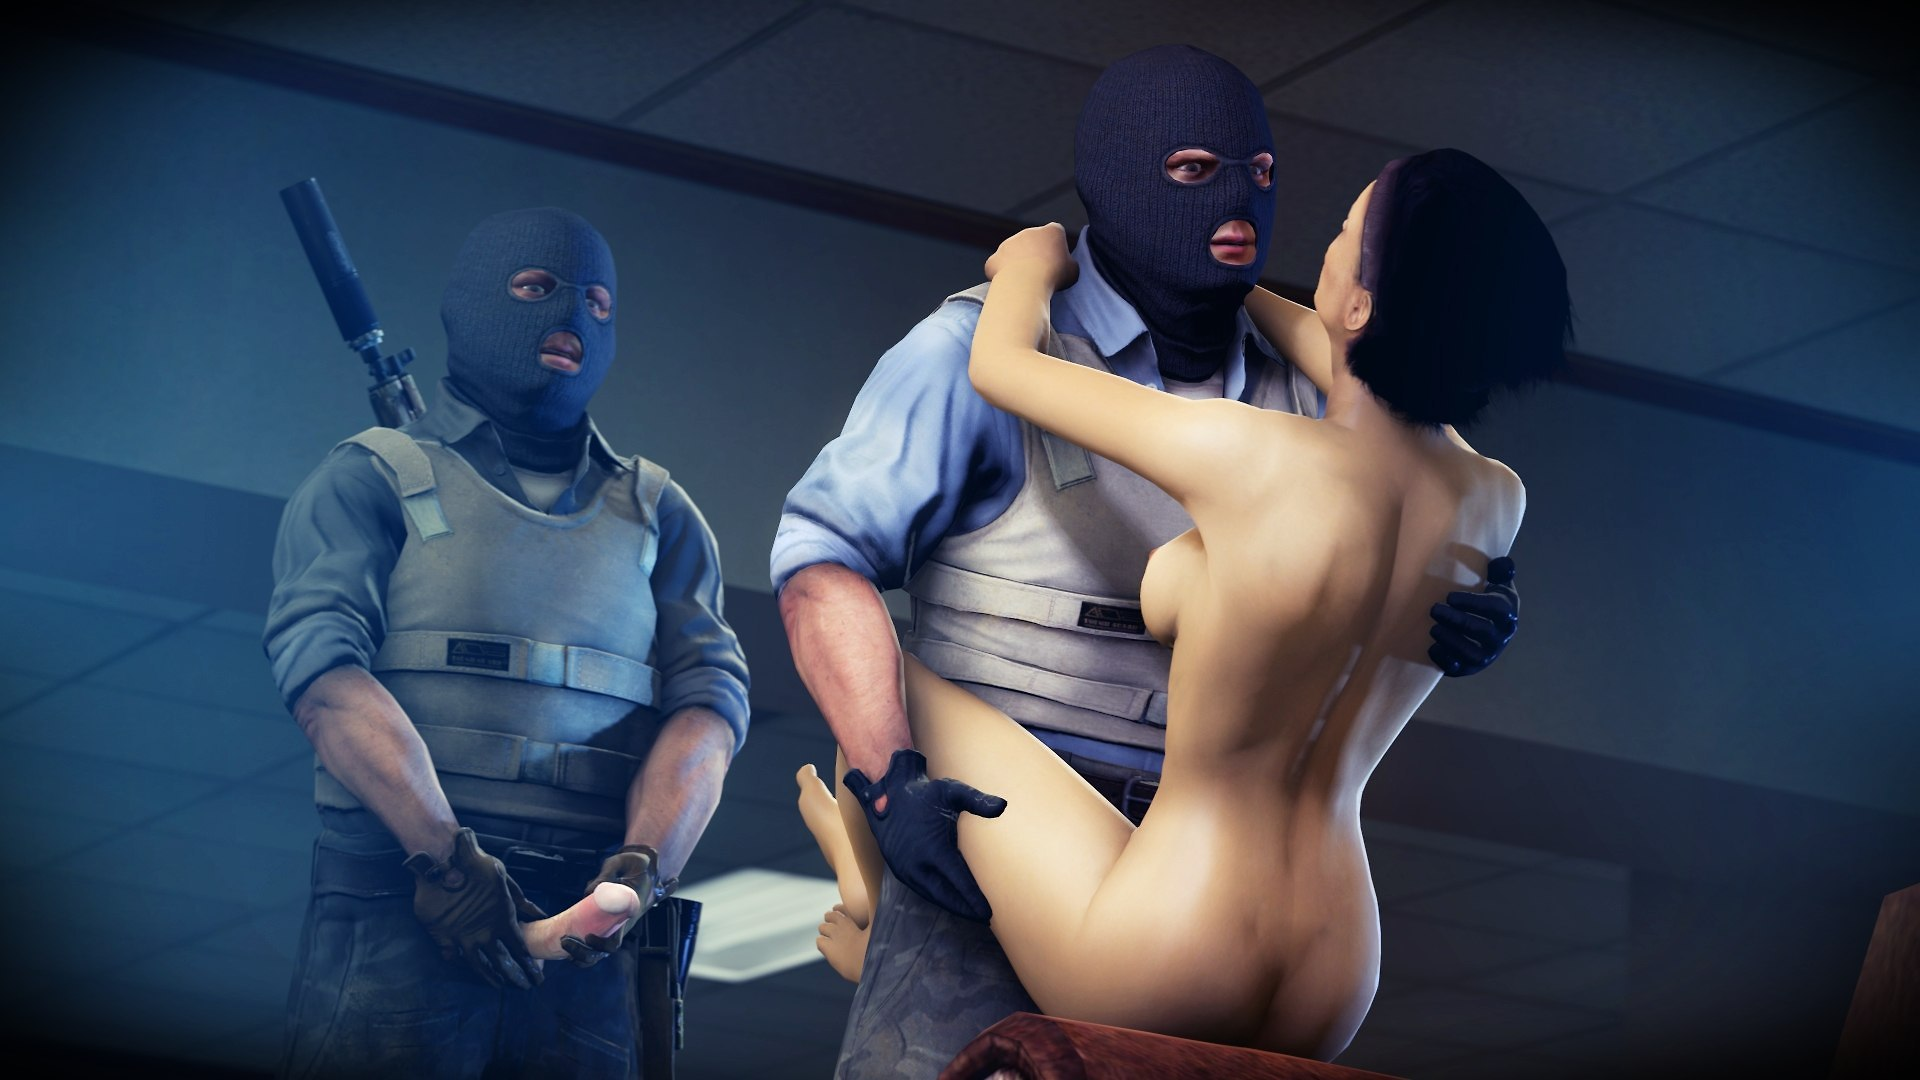 Counter strike xxx pic exposed pic